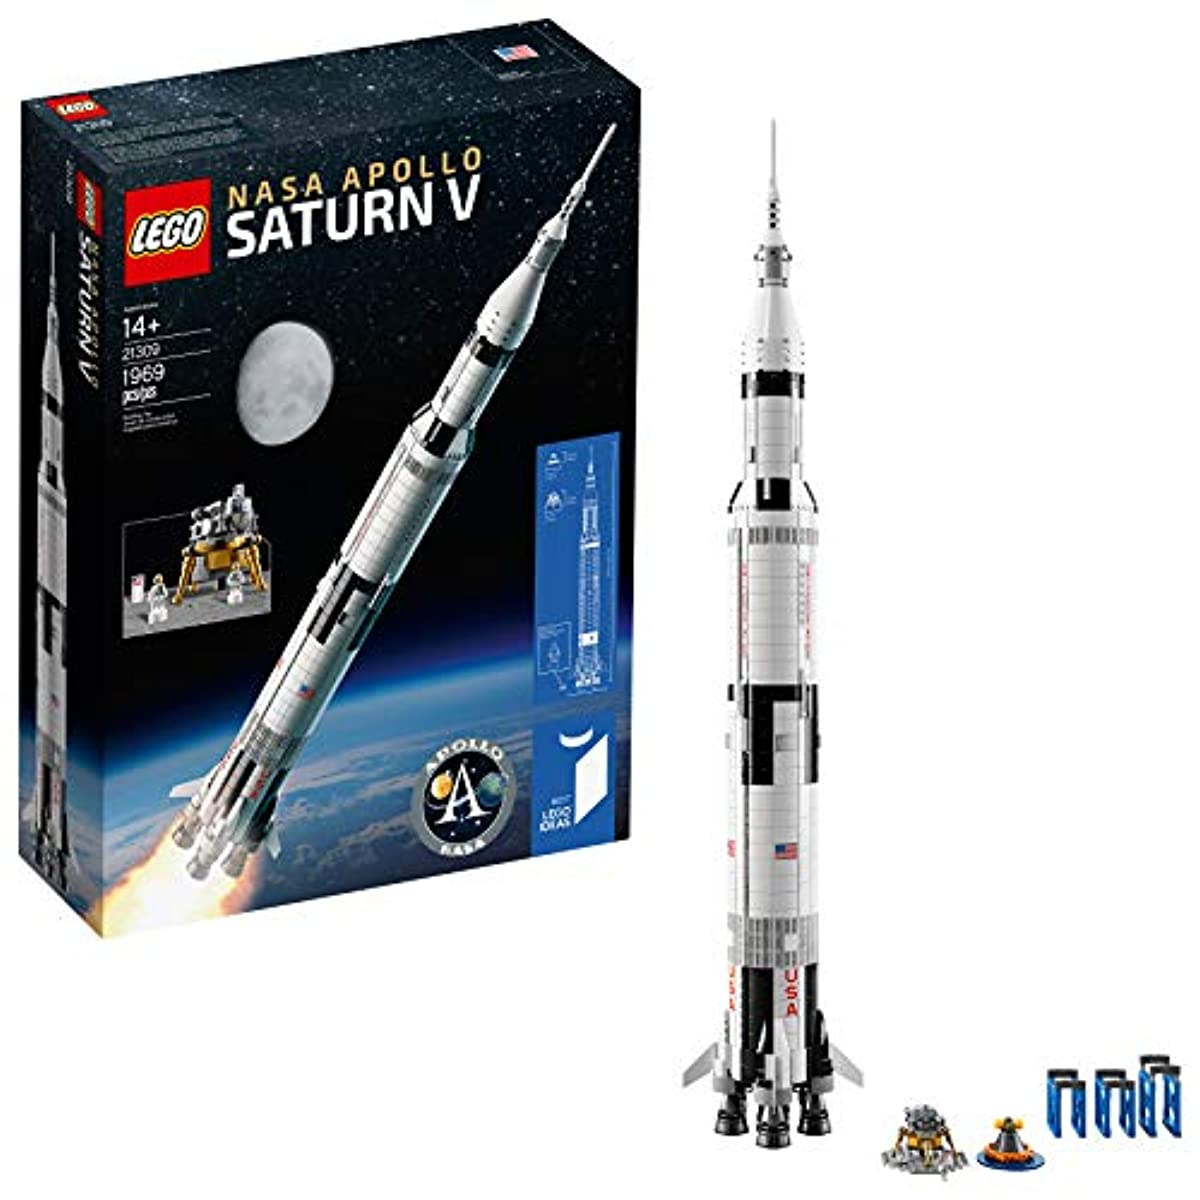 [레고 스페이스] LEGO Ideas NASA Apollo Saturn V 21309 Building Kit